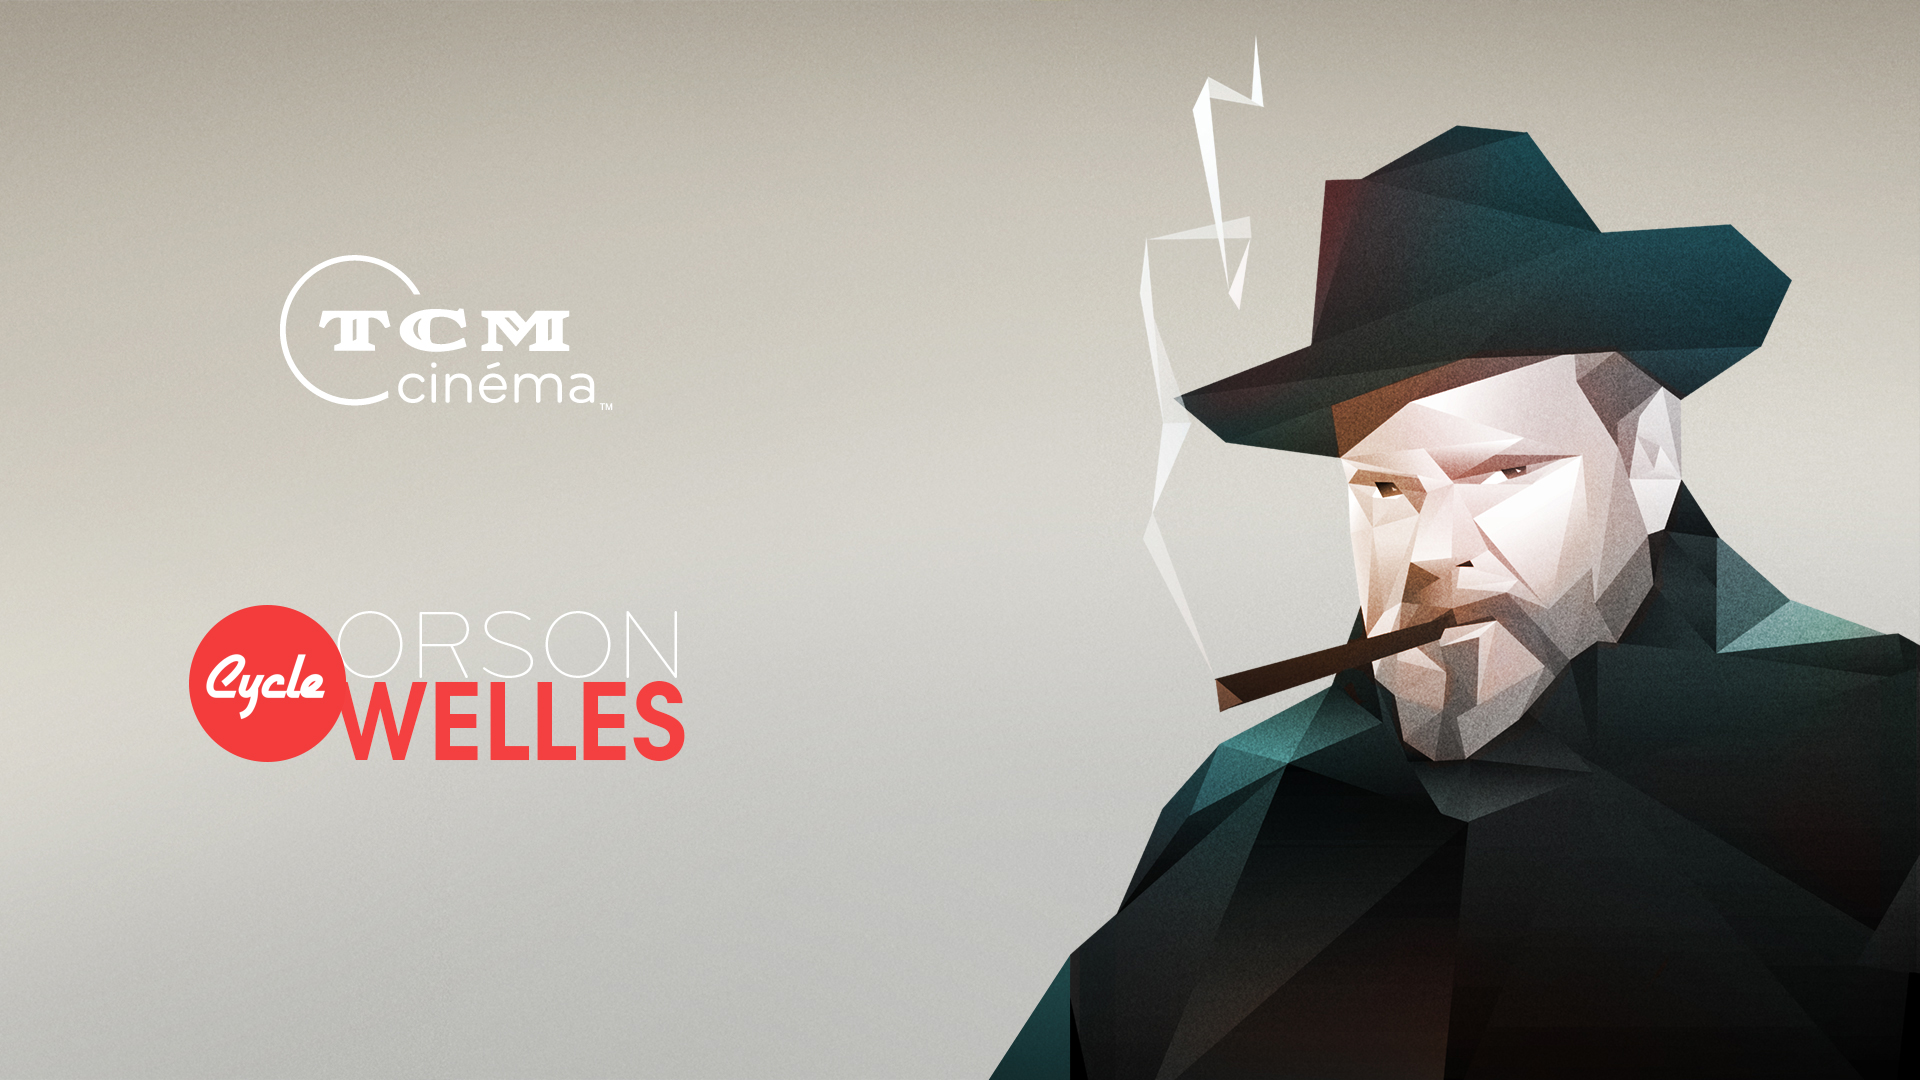 KeyVisual Cycle Orson Welles